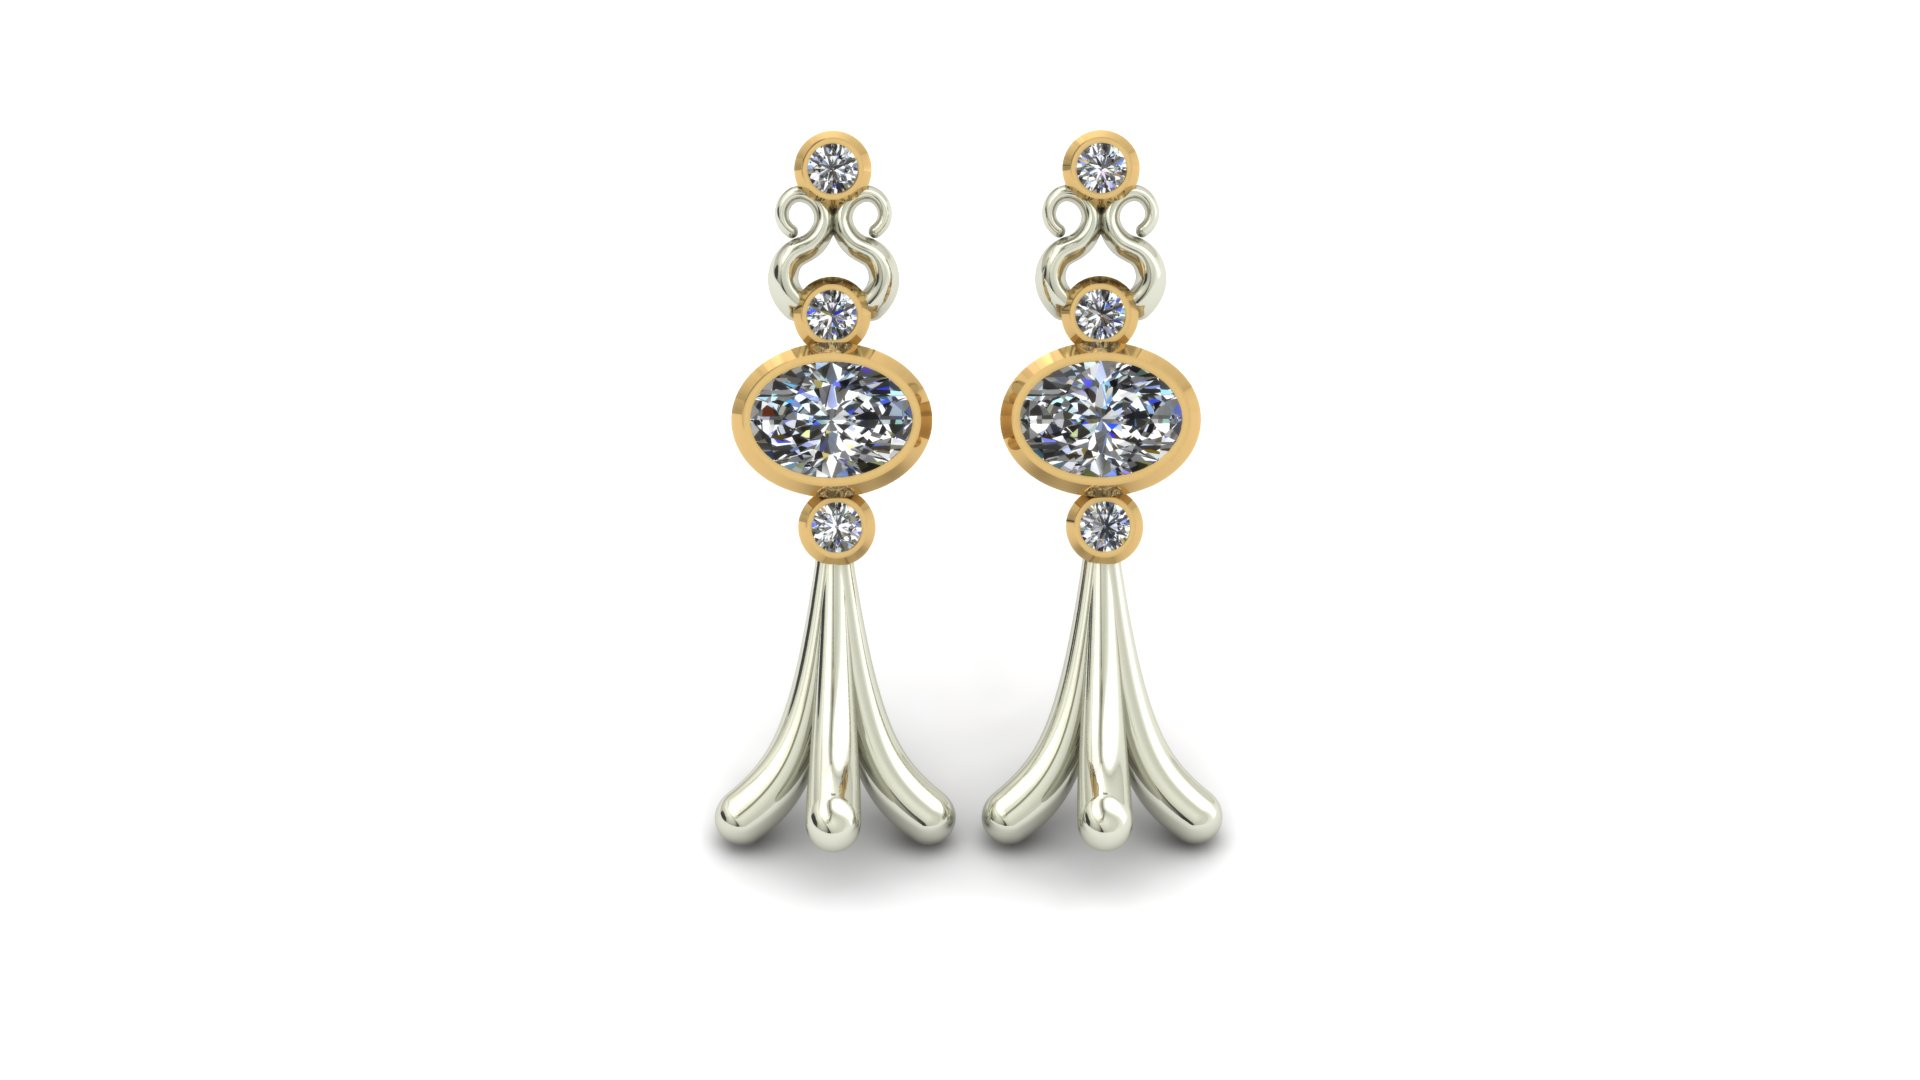 UNIQUE OVAL DIAMOND EARRINGS